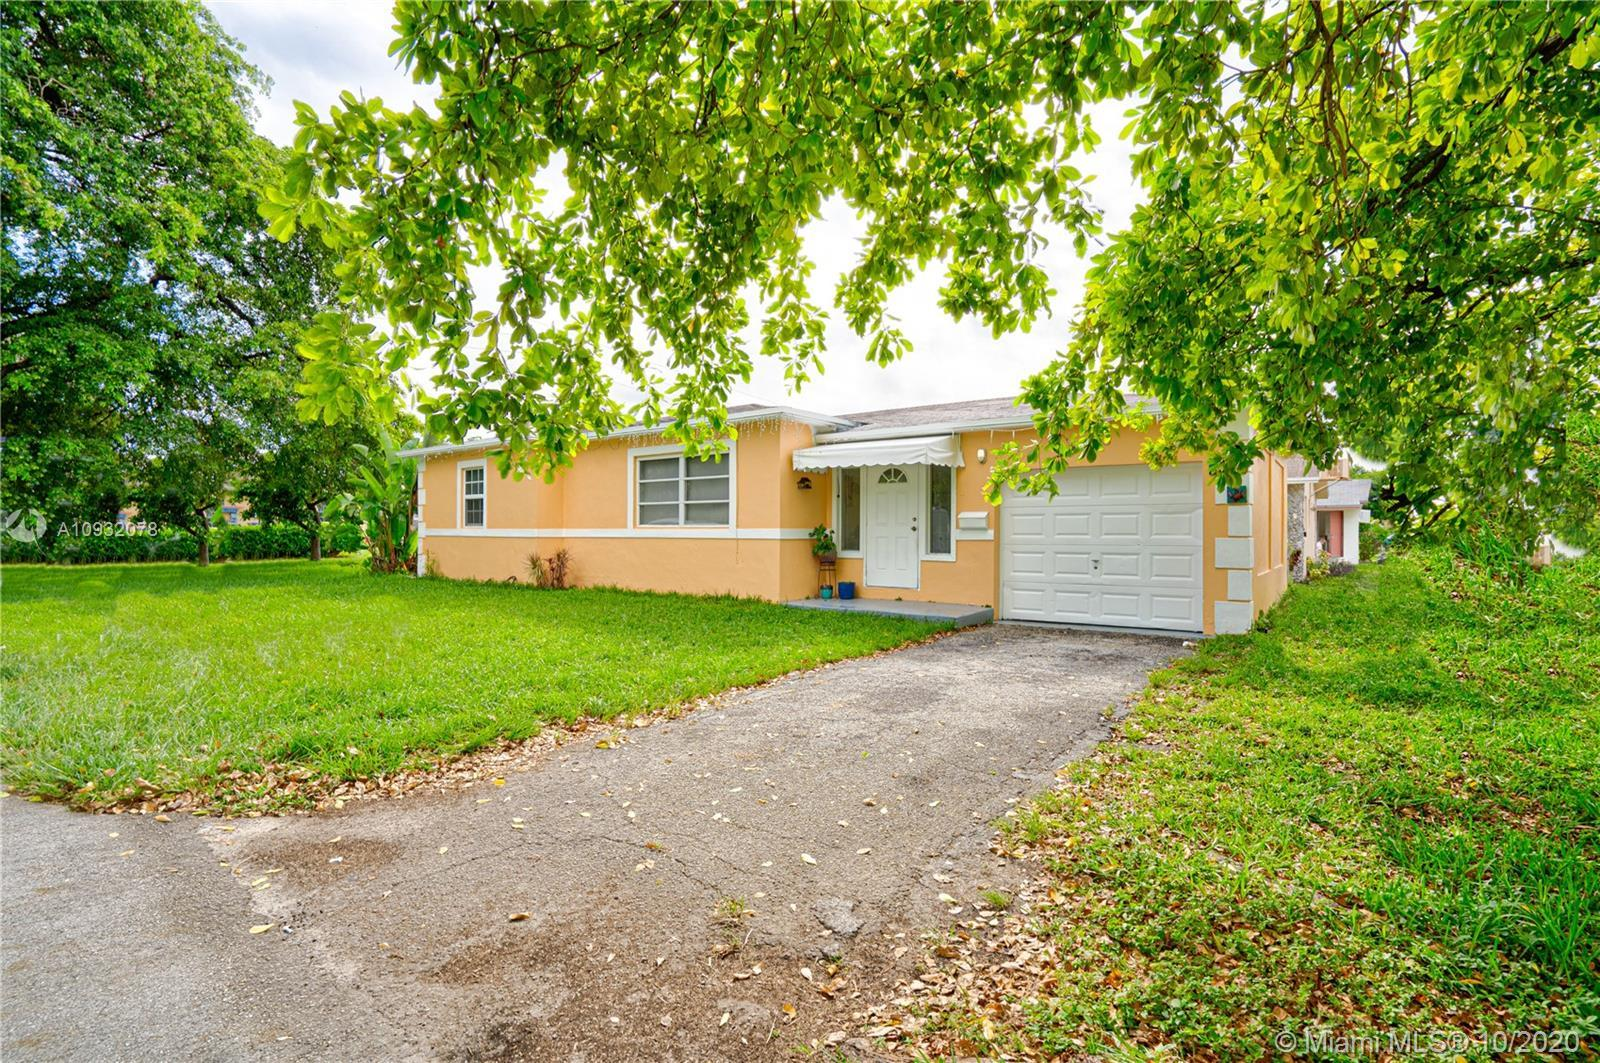 3/2 Single family home with an attached one car garage on a corner lot.  Please text listing agent